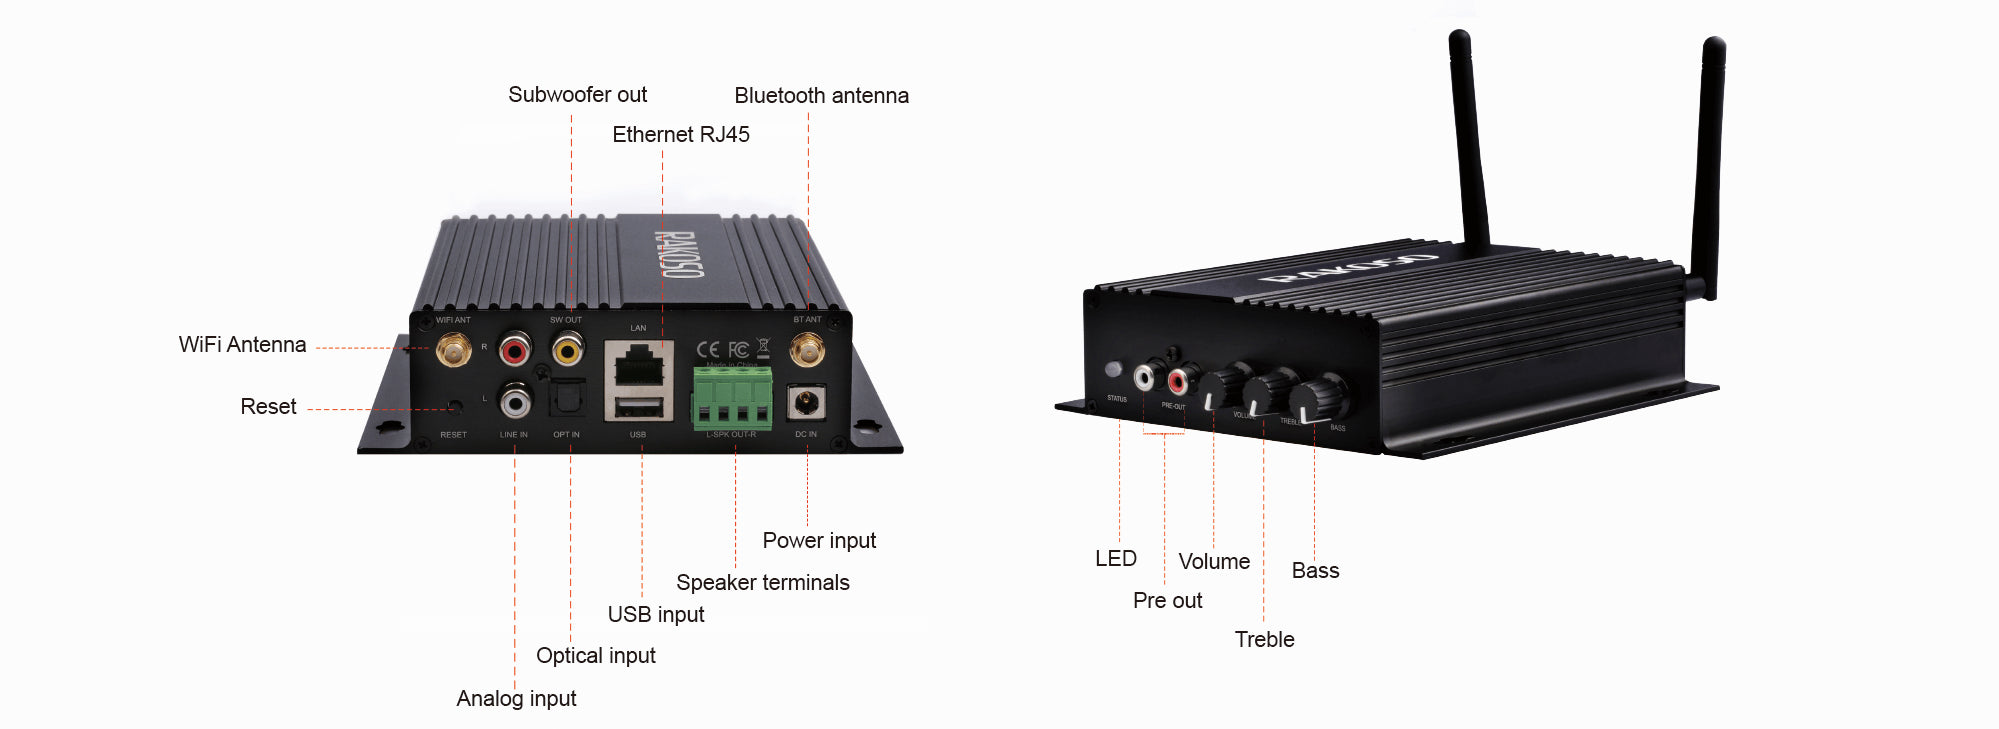 wifi&bluetooth audio amplifier for home or stereo